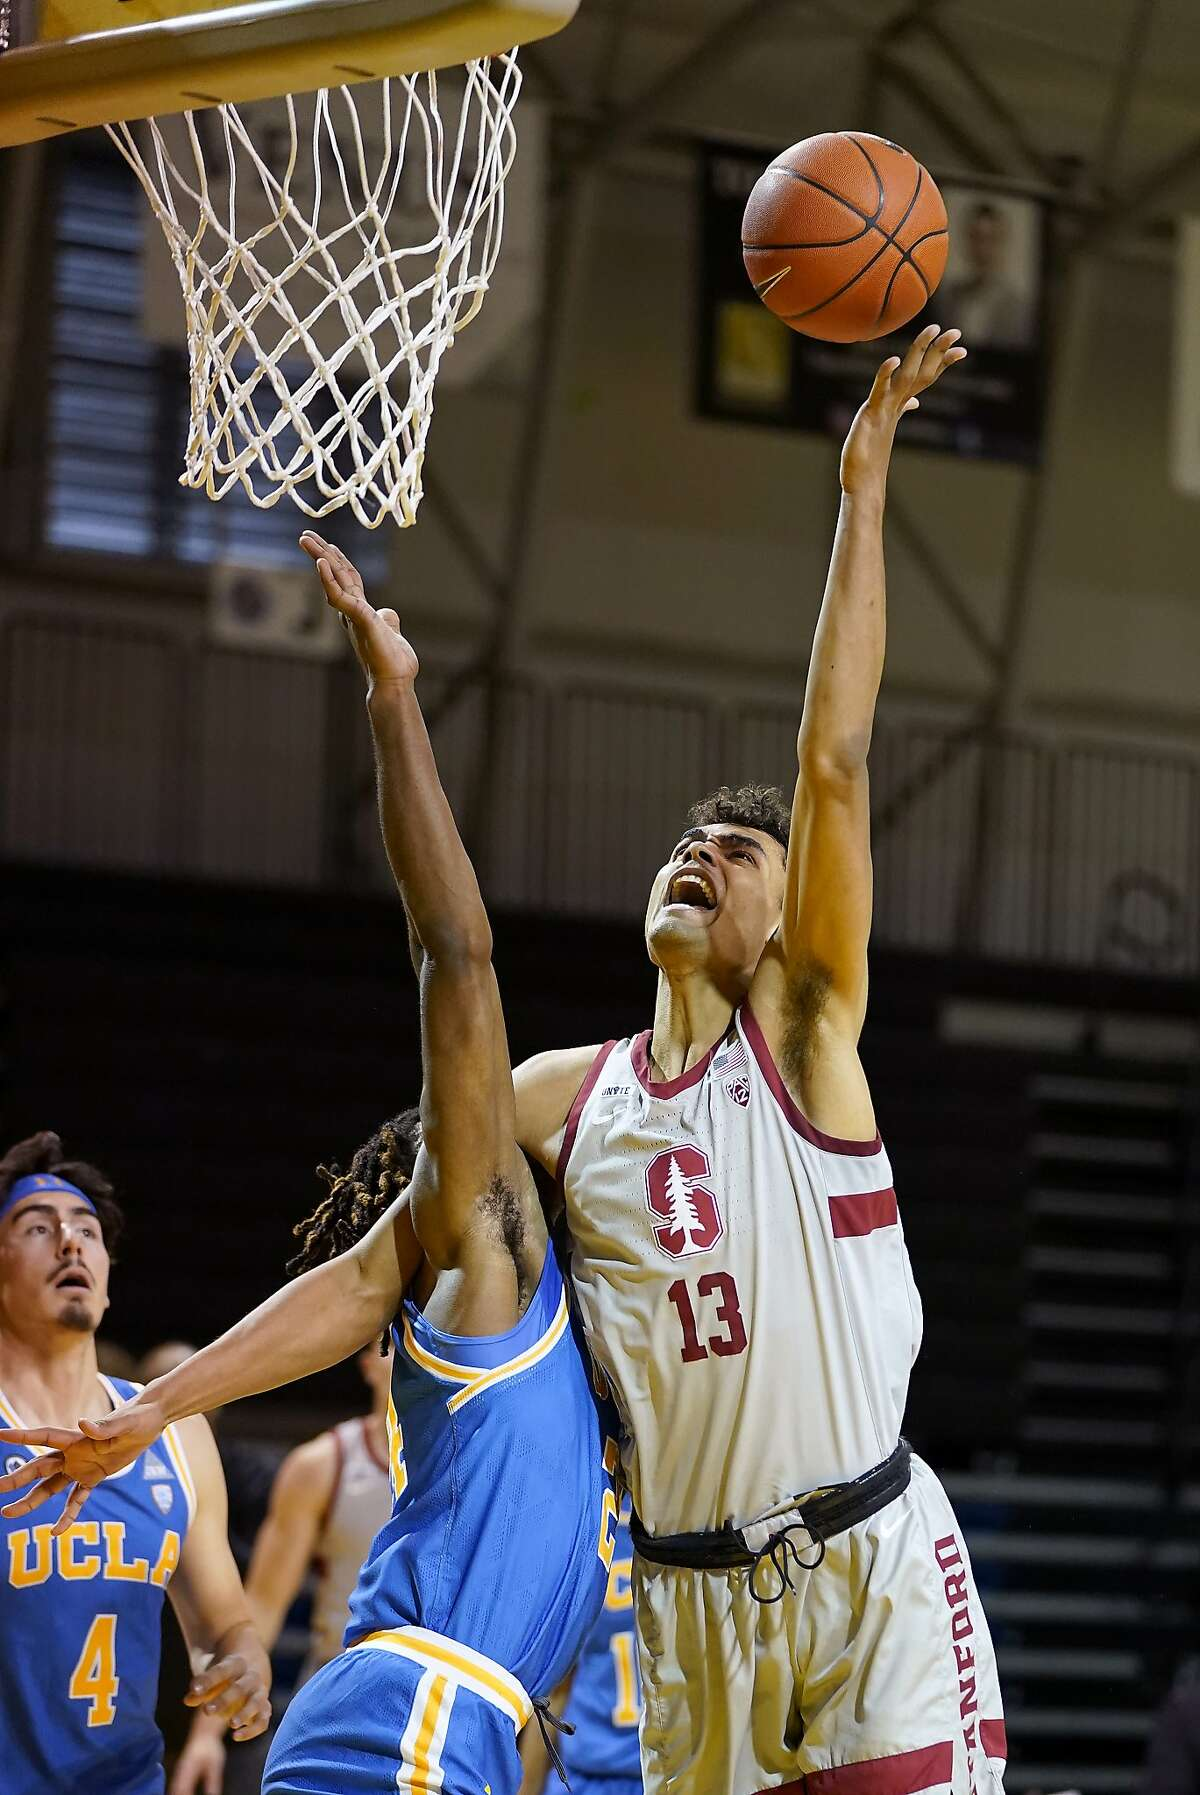 Stanford forward Oscar da Silva drives to the basket against UCLA forward Jalen Hill (24) during the first half.